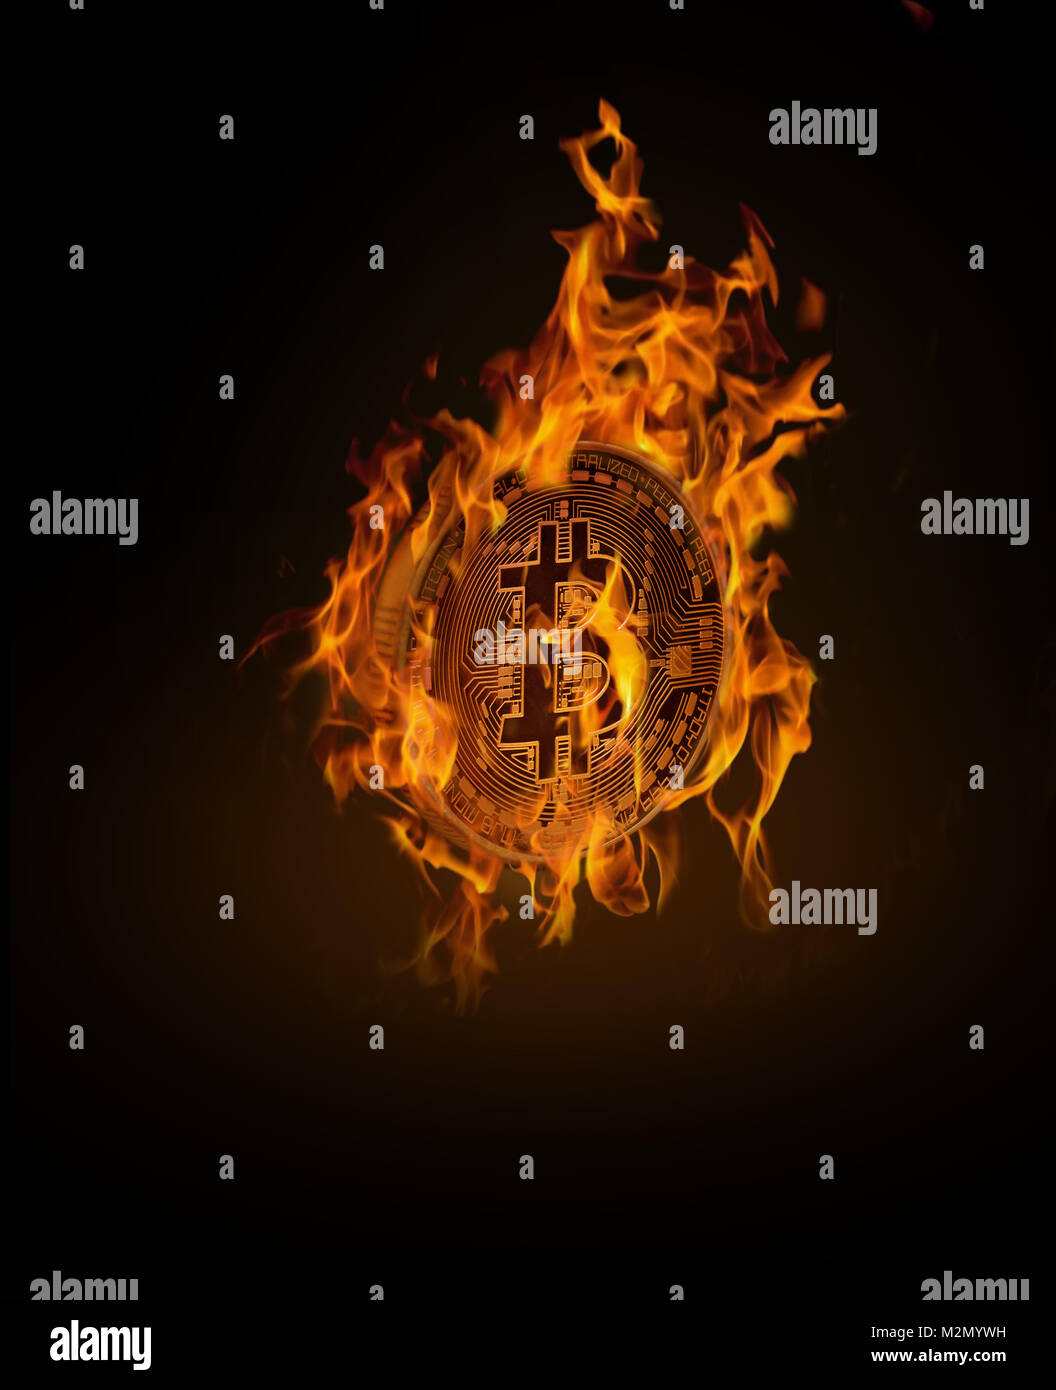 Burning gold bitcoin with flames on a black background - Stock Image